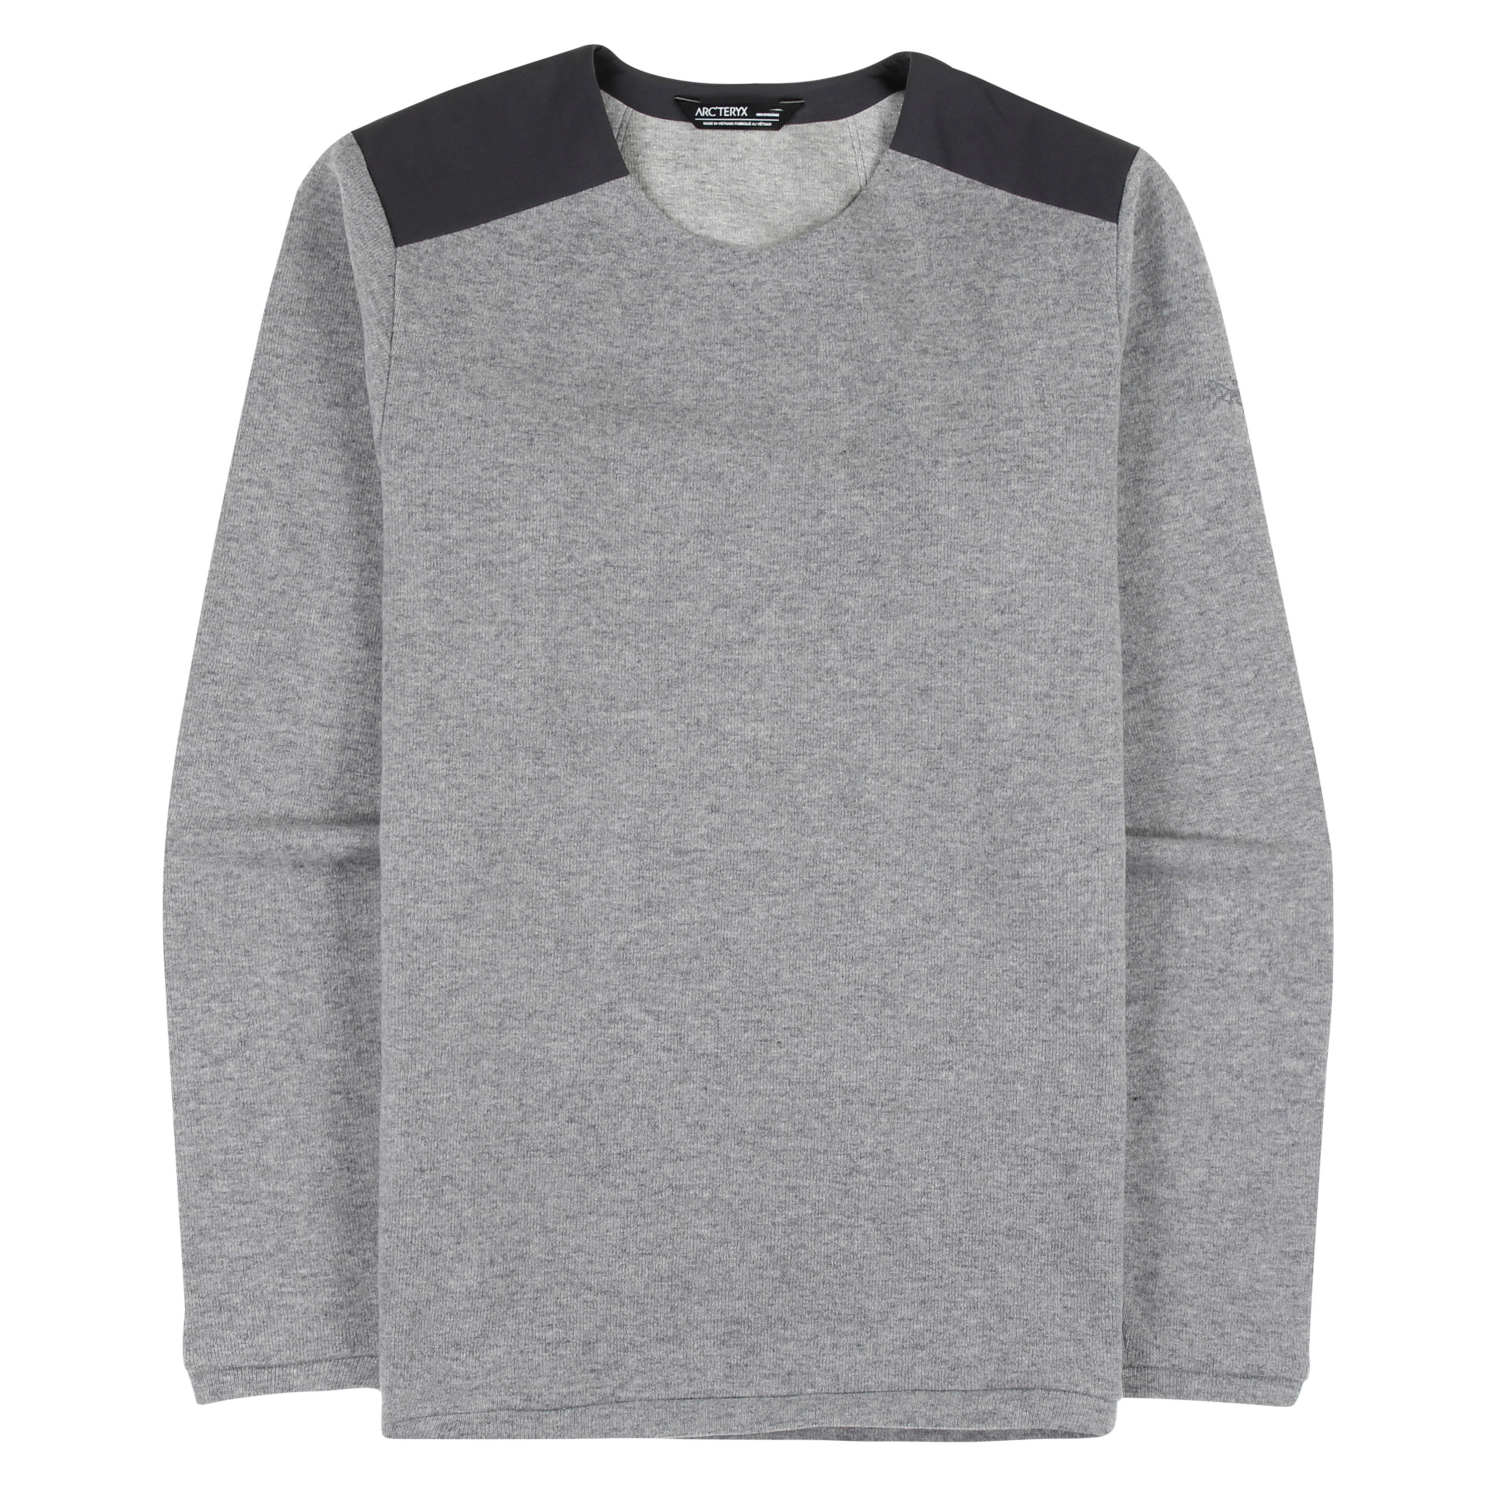 Main product image: Donavan Crew Neck Sweater Men's